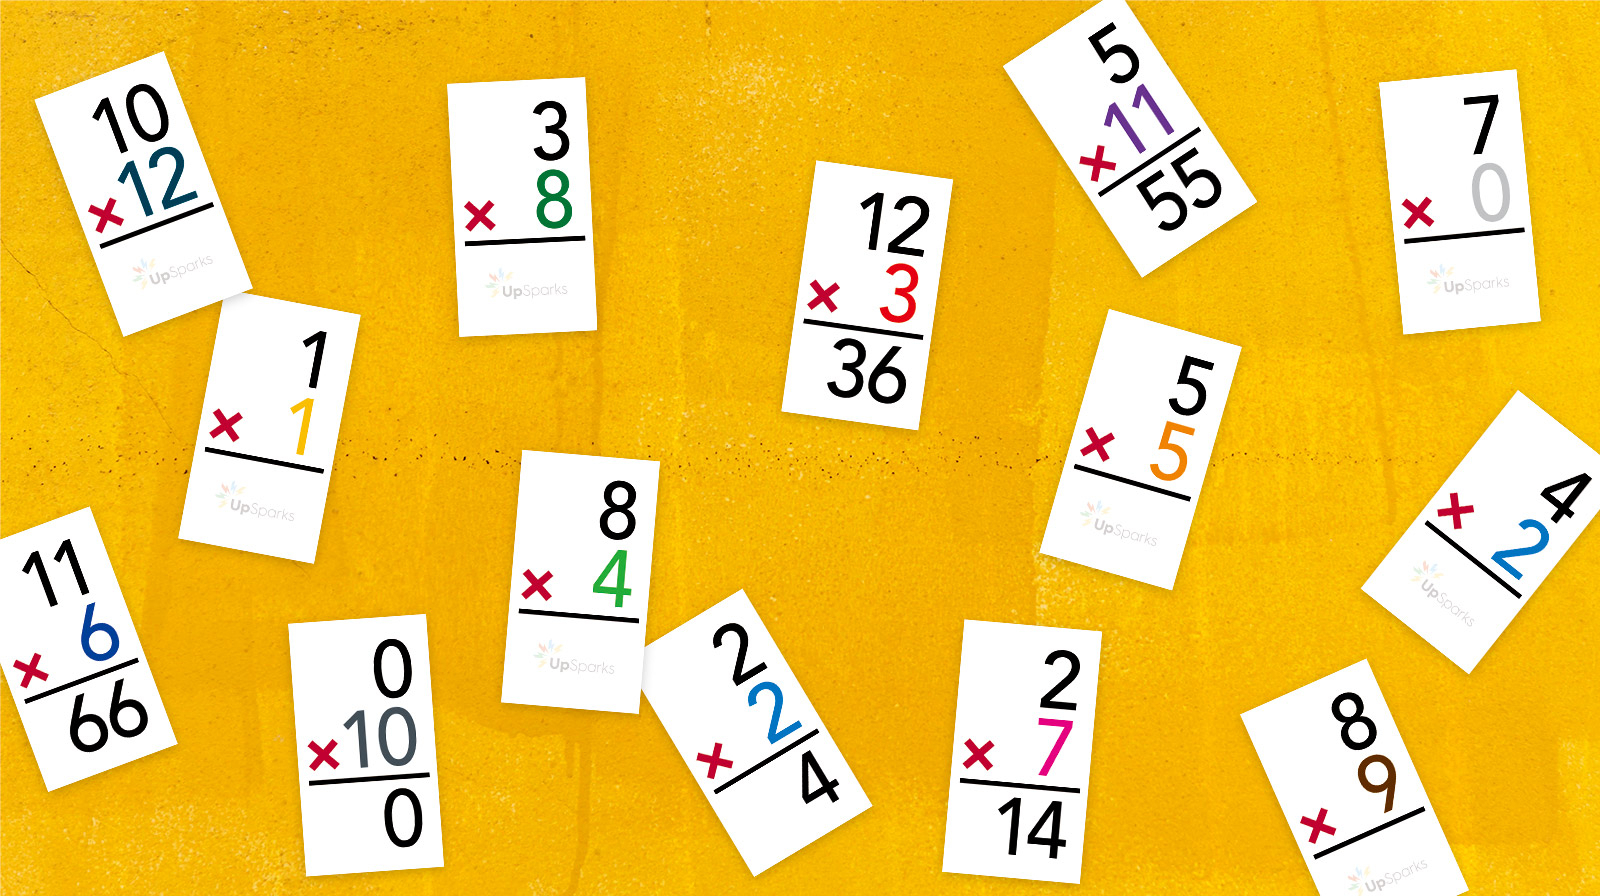 Free Multiplication Flash Cards Printable Sheets From Upsparks in Printable 3's Multiplication Flash Cards